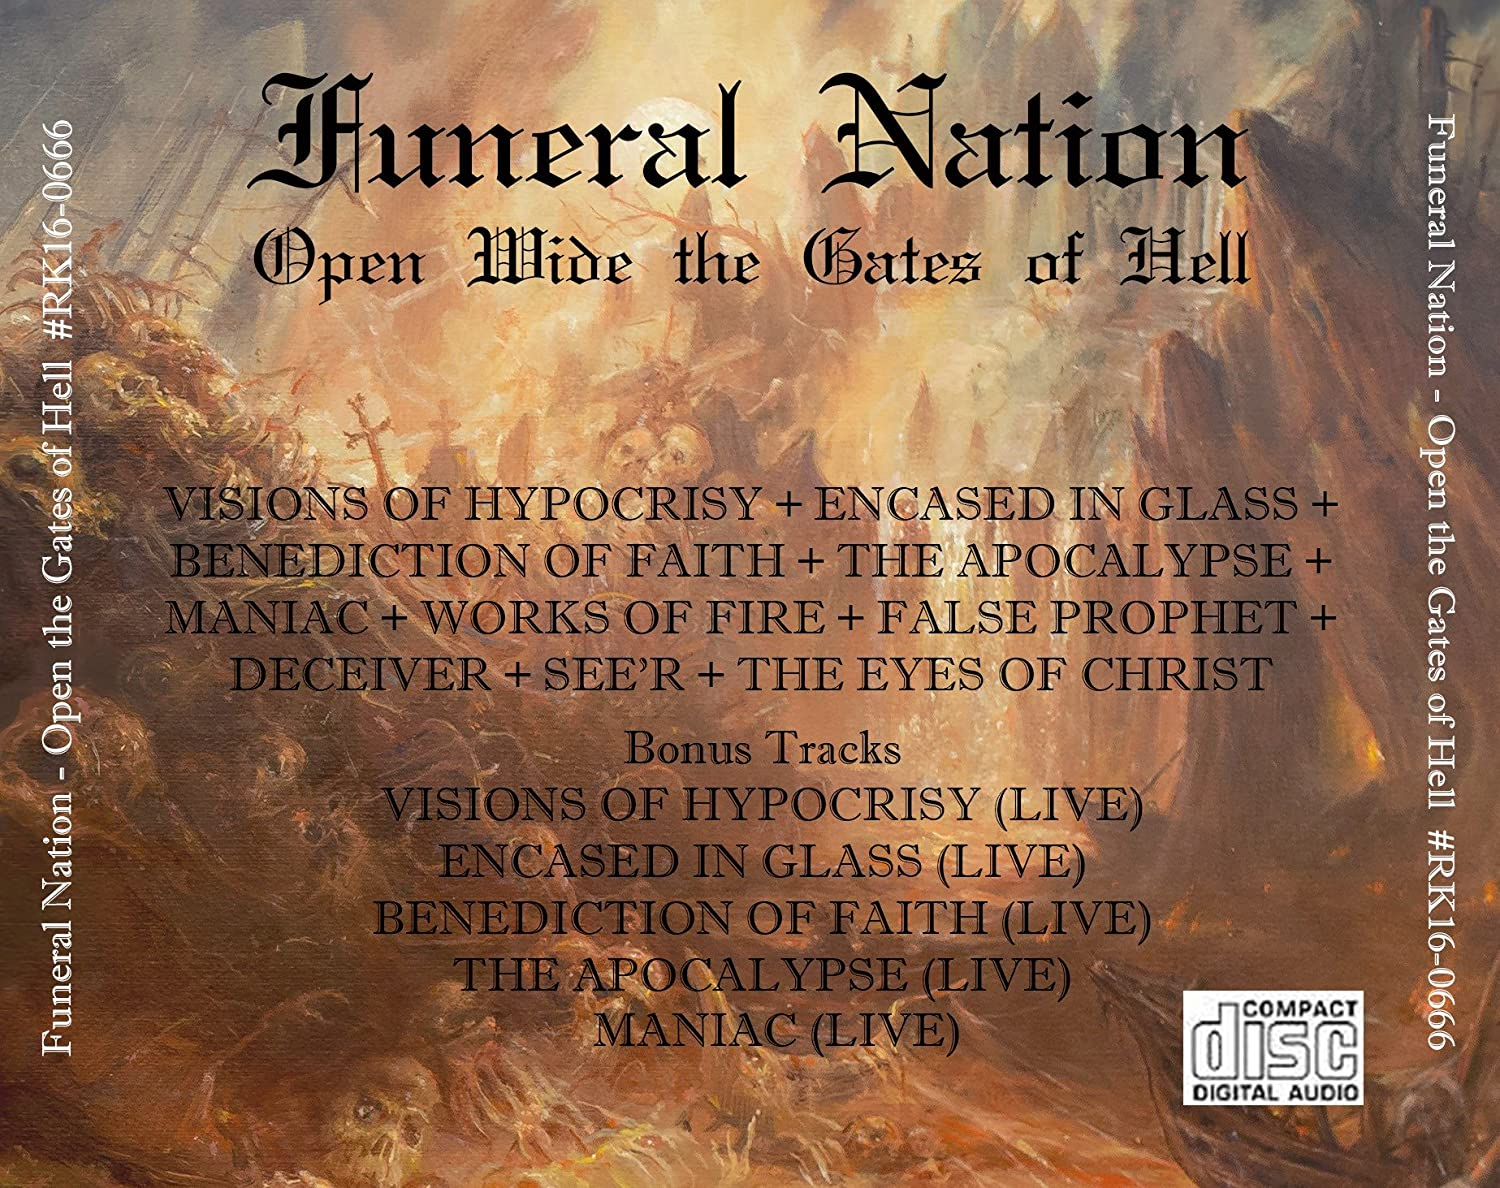 Funeral Nation - Open Wide The Gates Of Hell - Amazon com Music